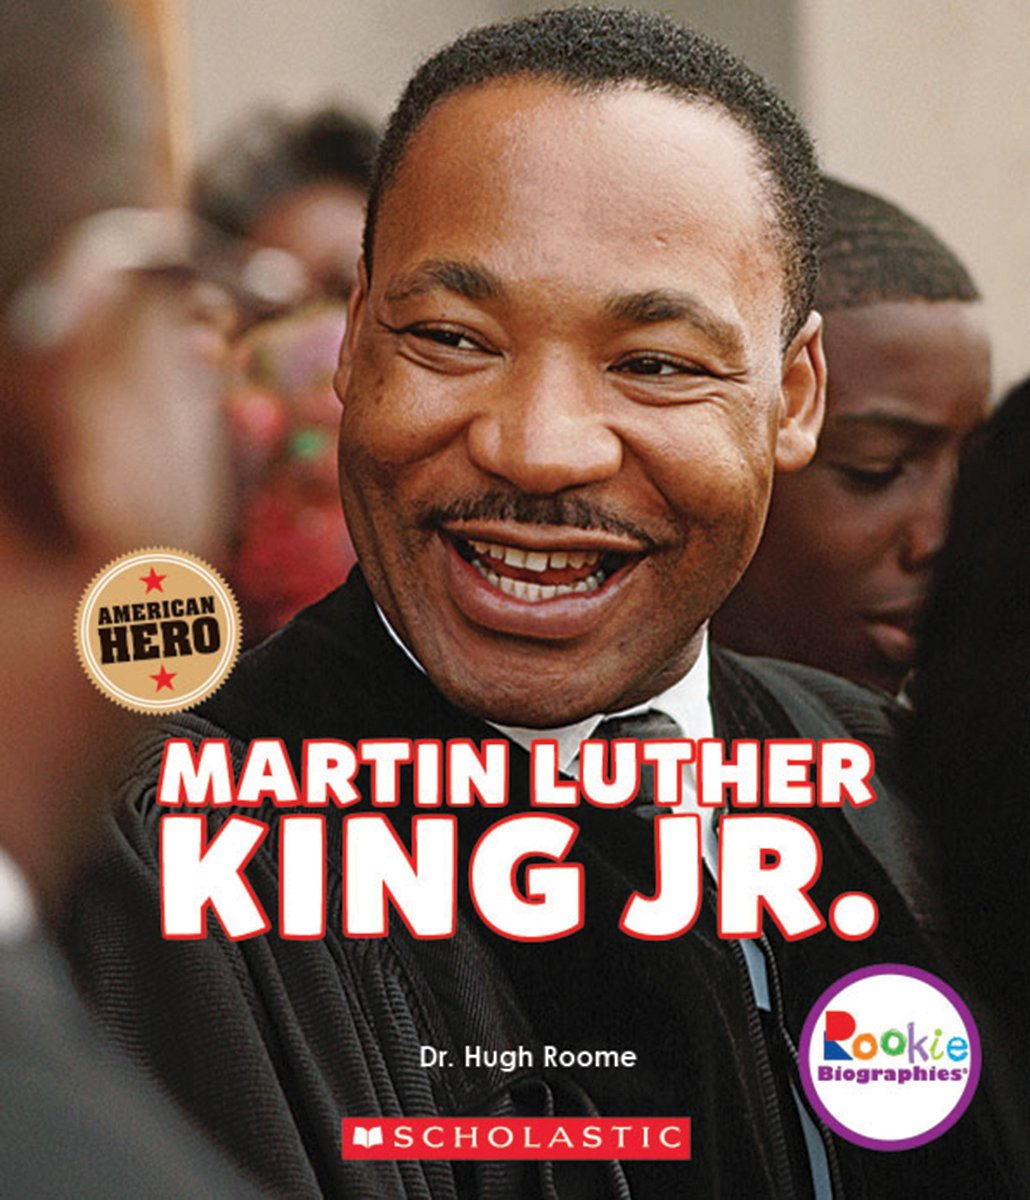 Martin Luther King Jr.: Civil Rights Leader and American Hero (Rookie Biographies)